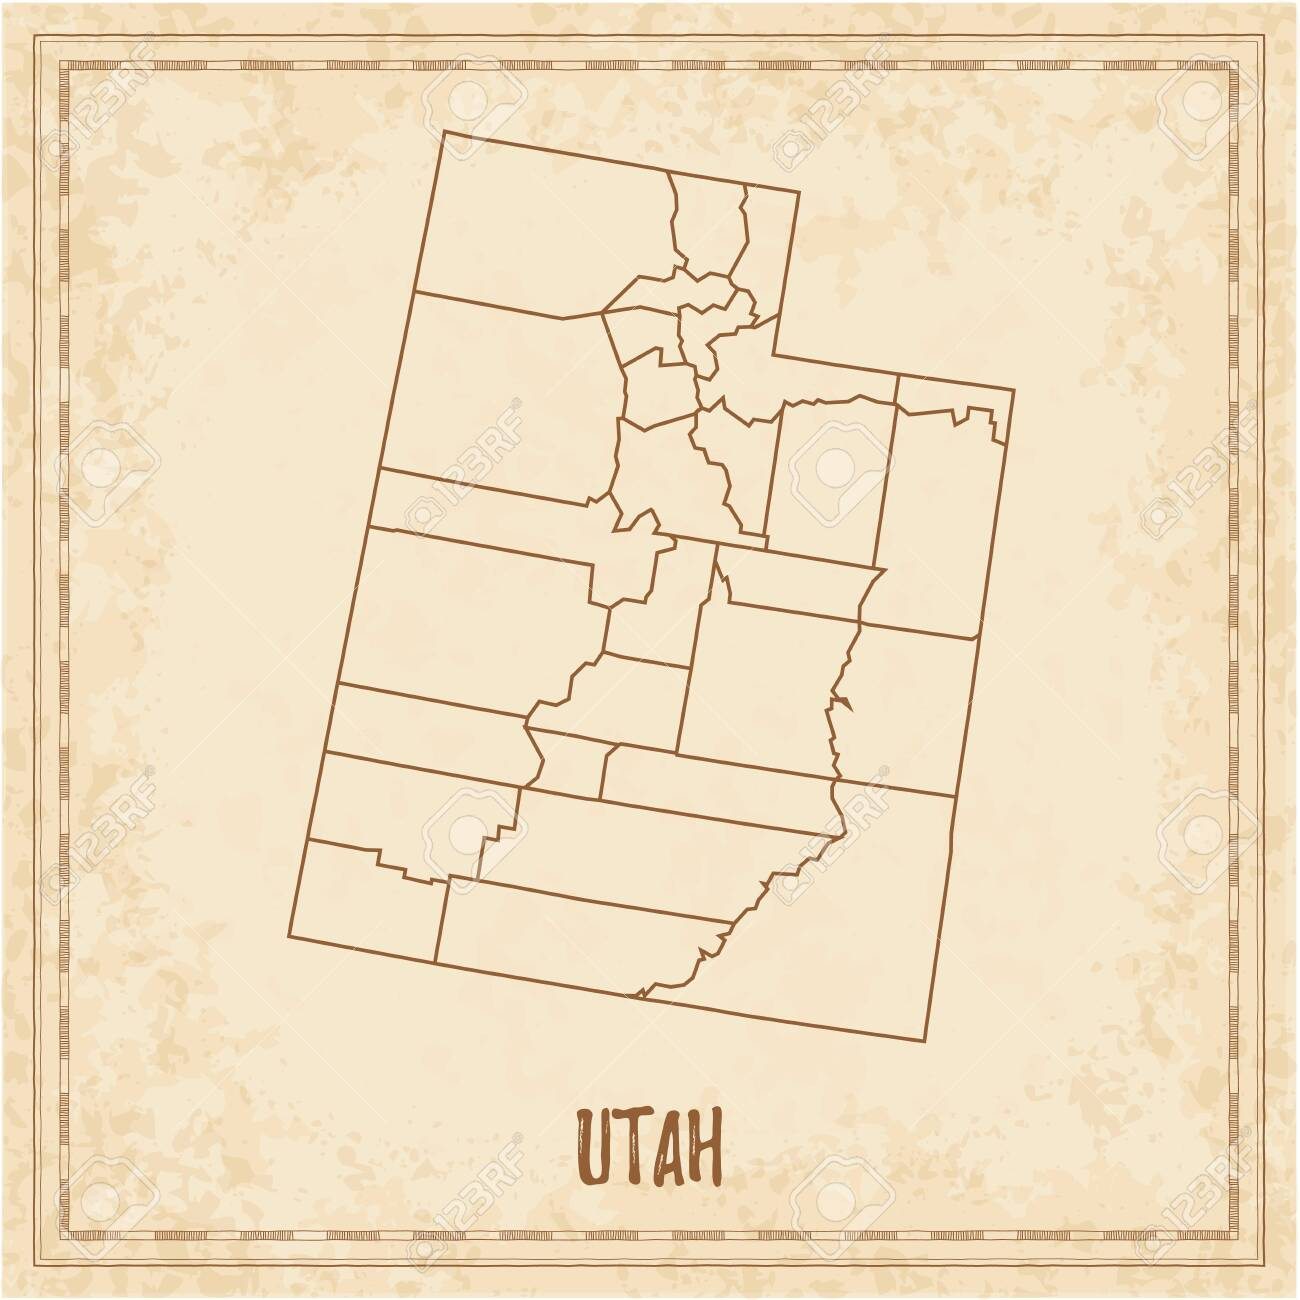 Pirate map of Utah. Blank vector map of the Us State with counties. Vector illustration. - 135958867